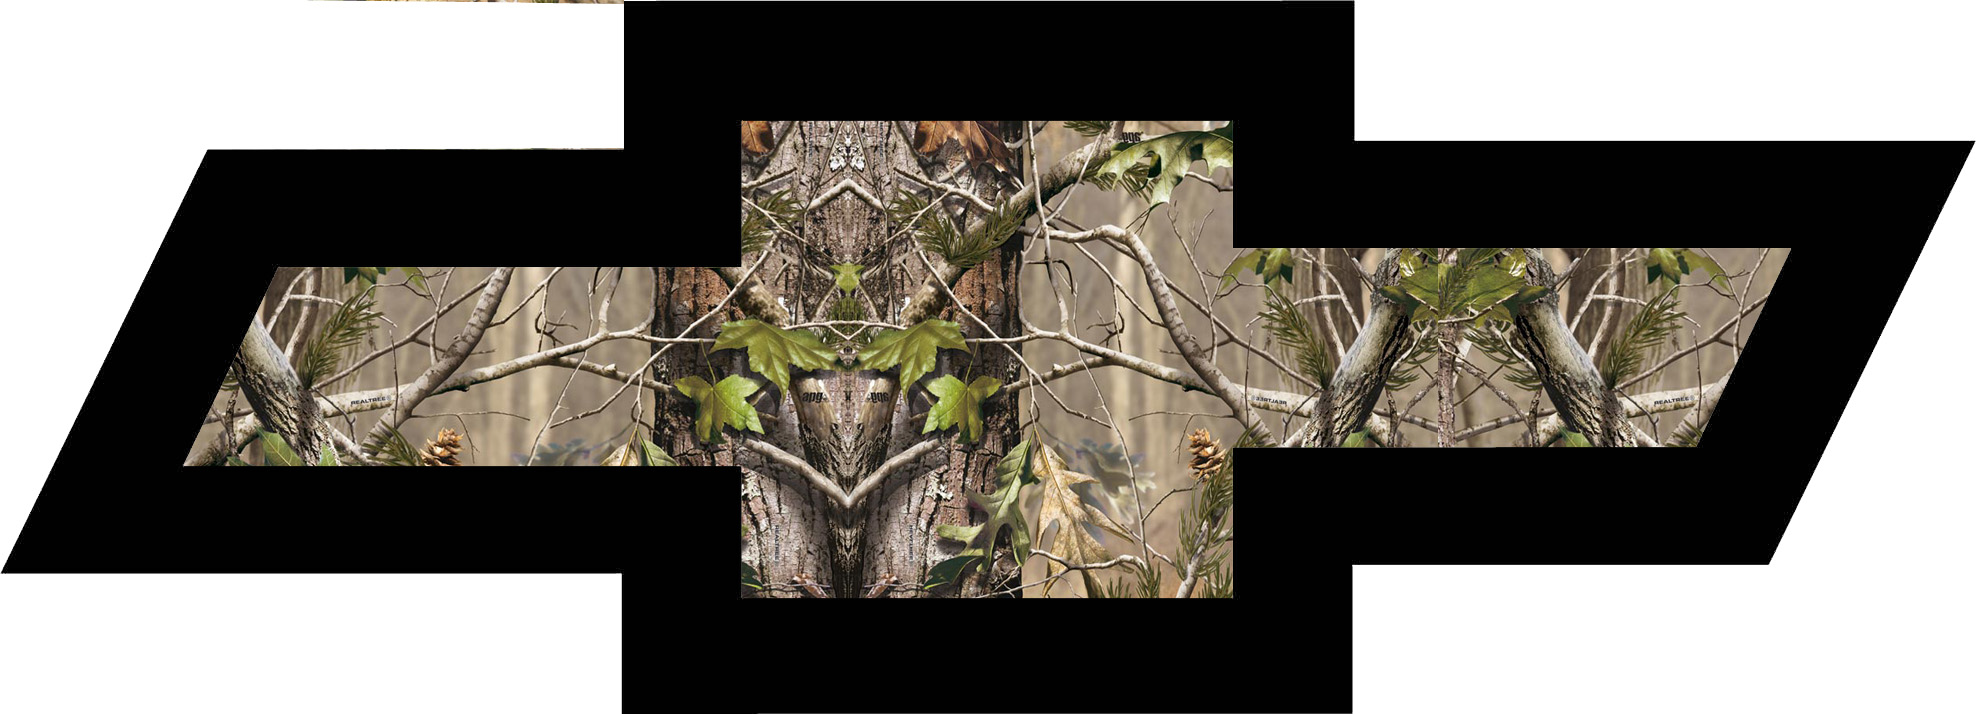 Camo Chevy Symbol Wallpaper Images Pictures   Becuo 1977x714